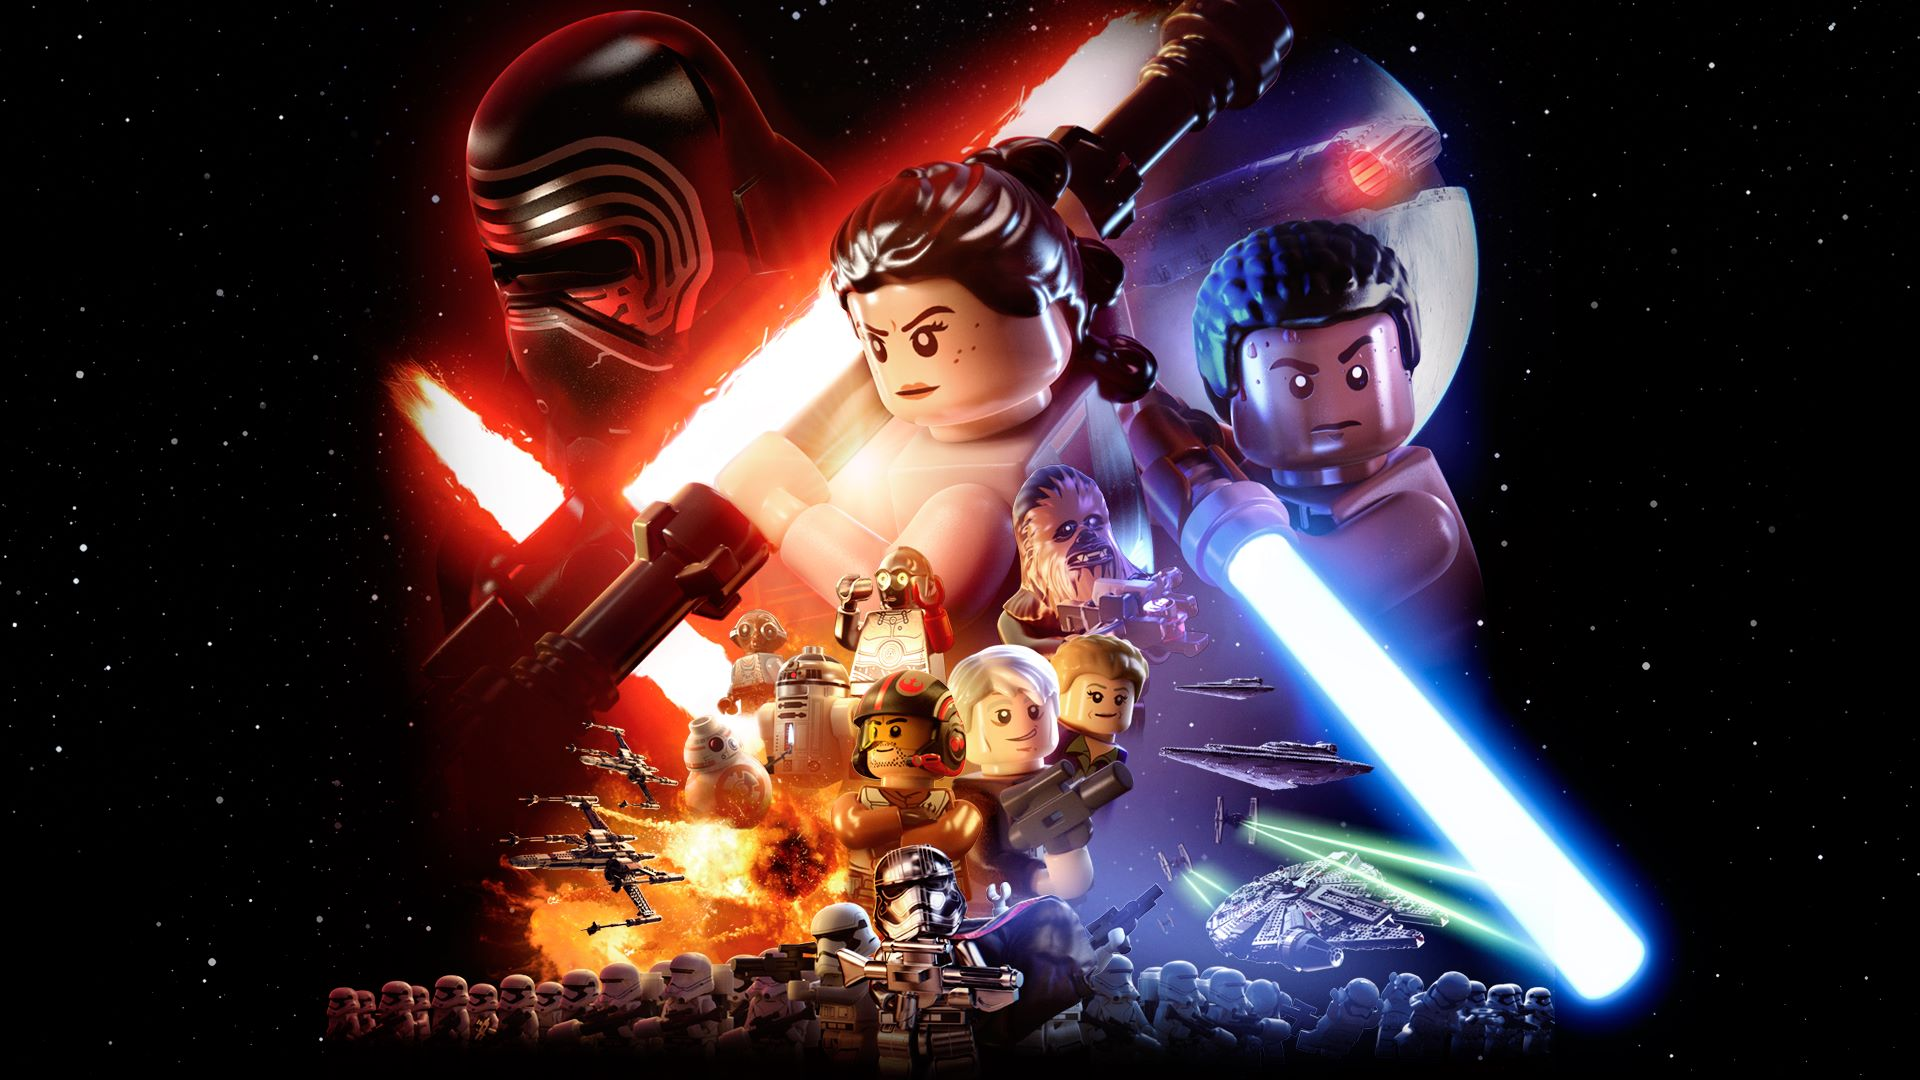 Lego star wars the force awakens - Lego star wars 1 2 3 4 5 6 ...